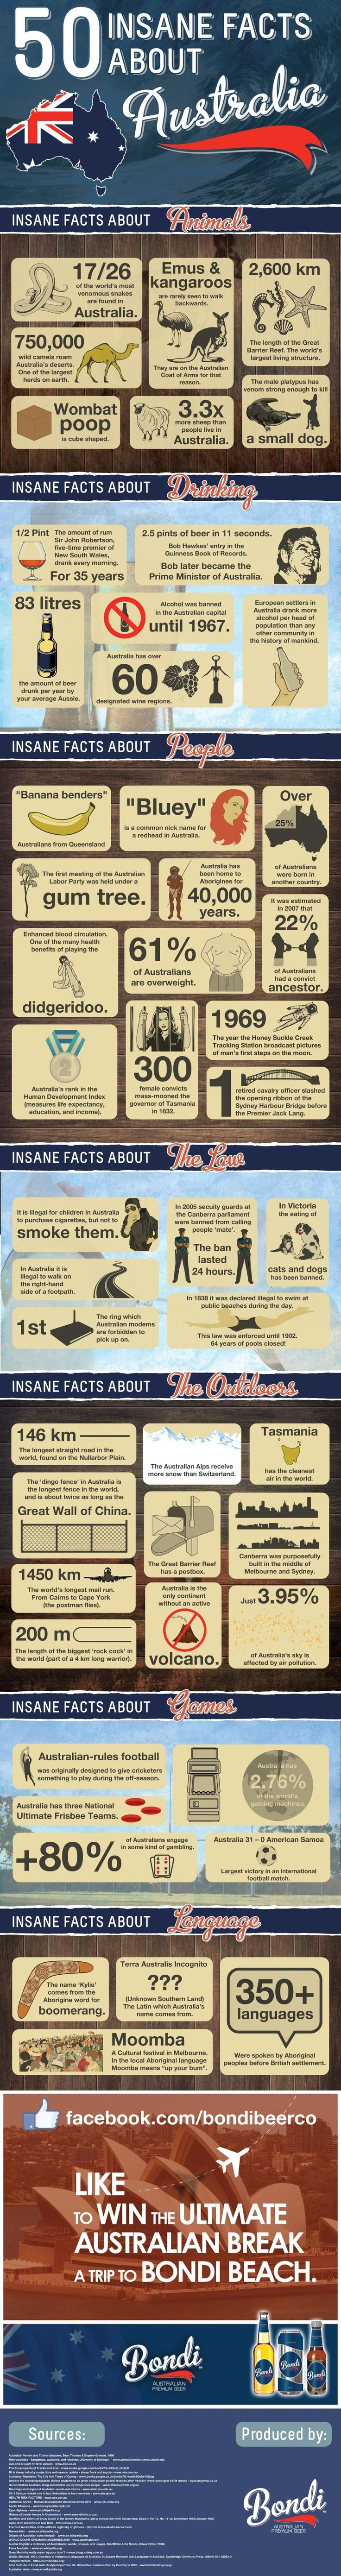 50 insane facts about Australia; intersting! One day I will visit